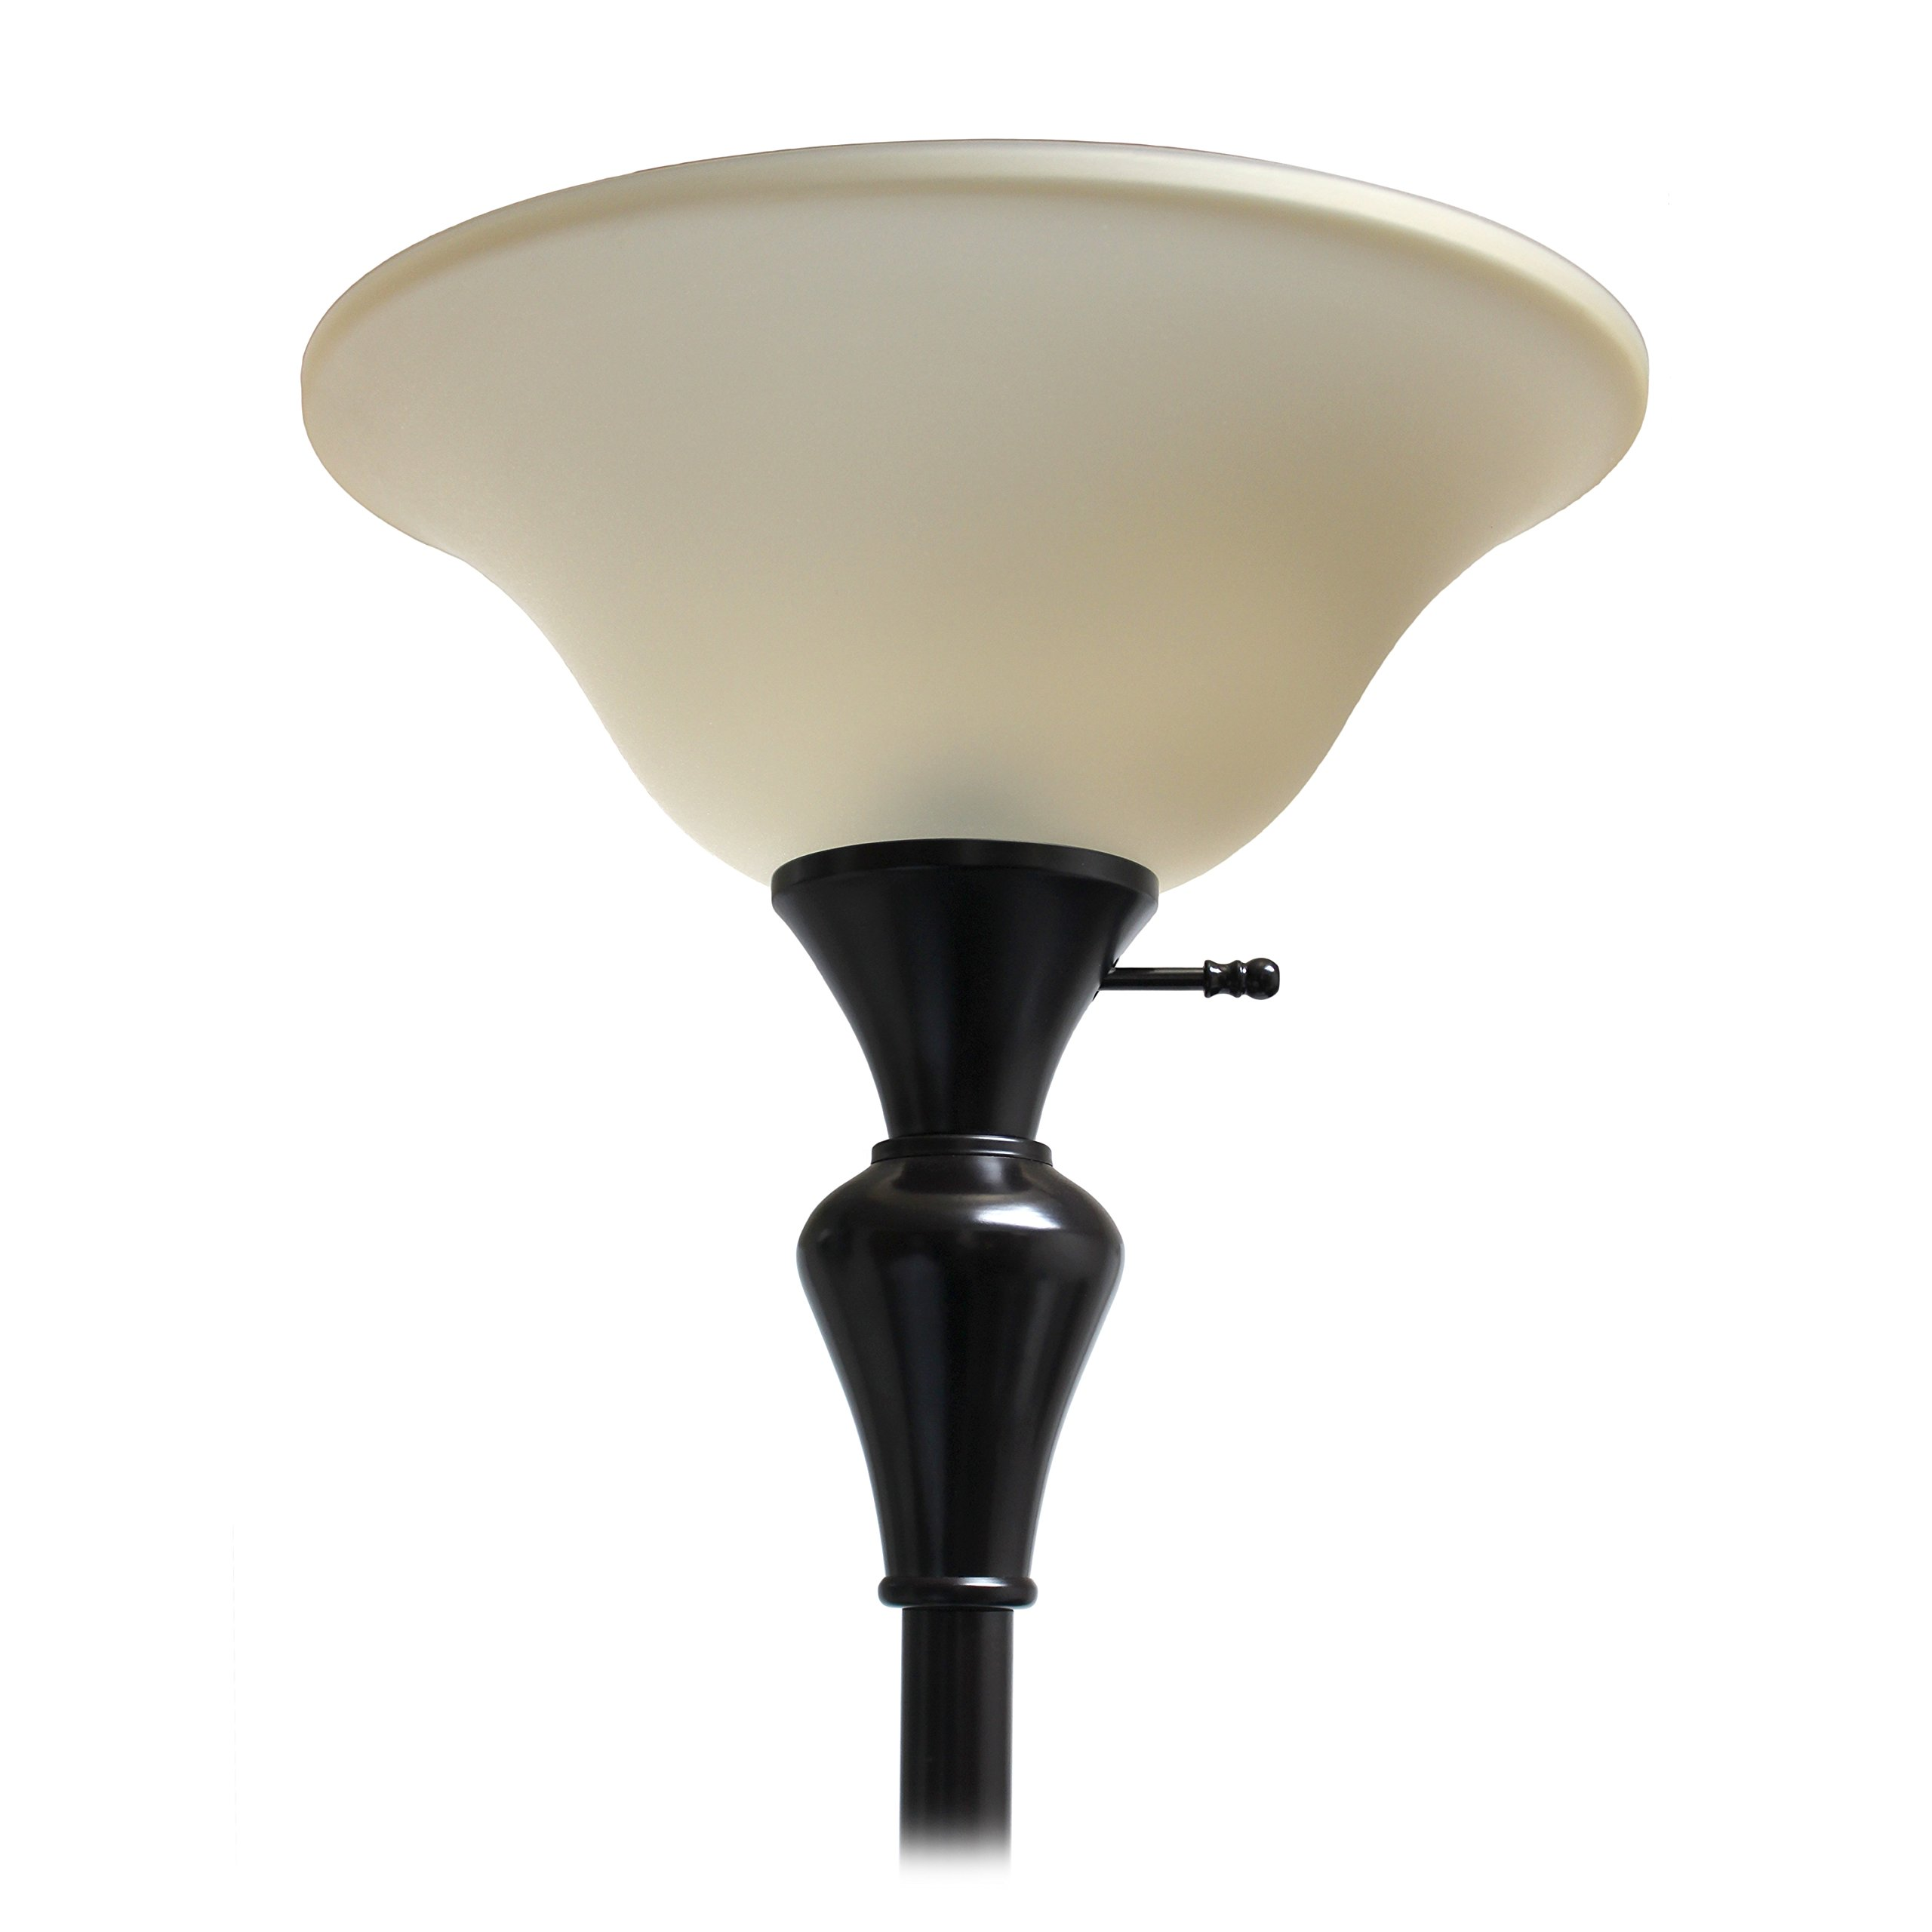 Elegant Designs LF2008-RBZ 1 Light Torchiere Floor Lamp w/Frosted Plastic Shade, Restoration Bronze